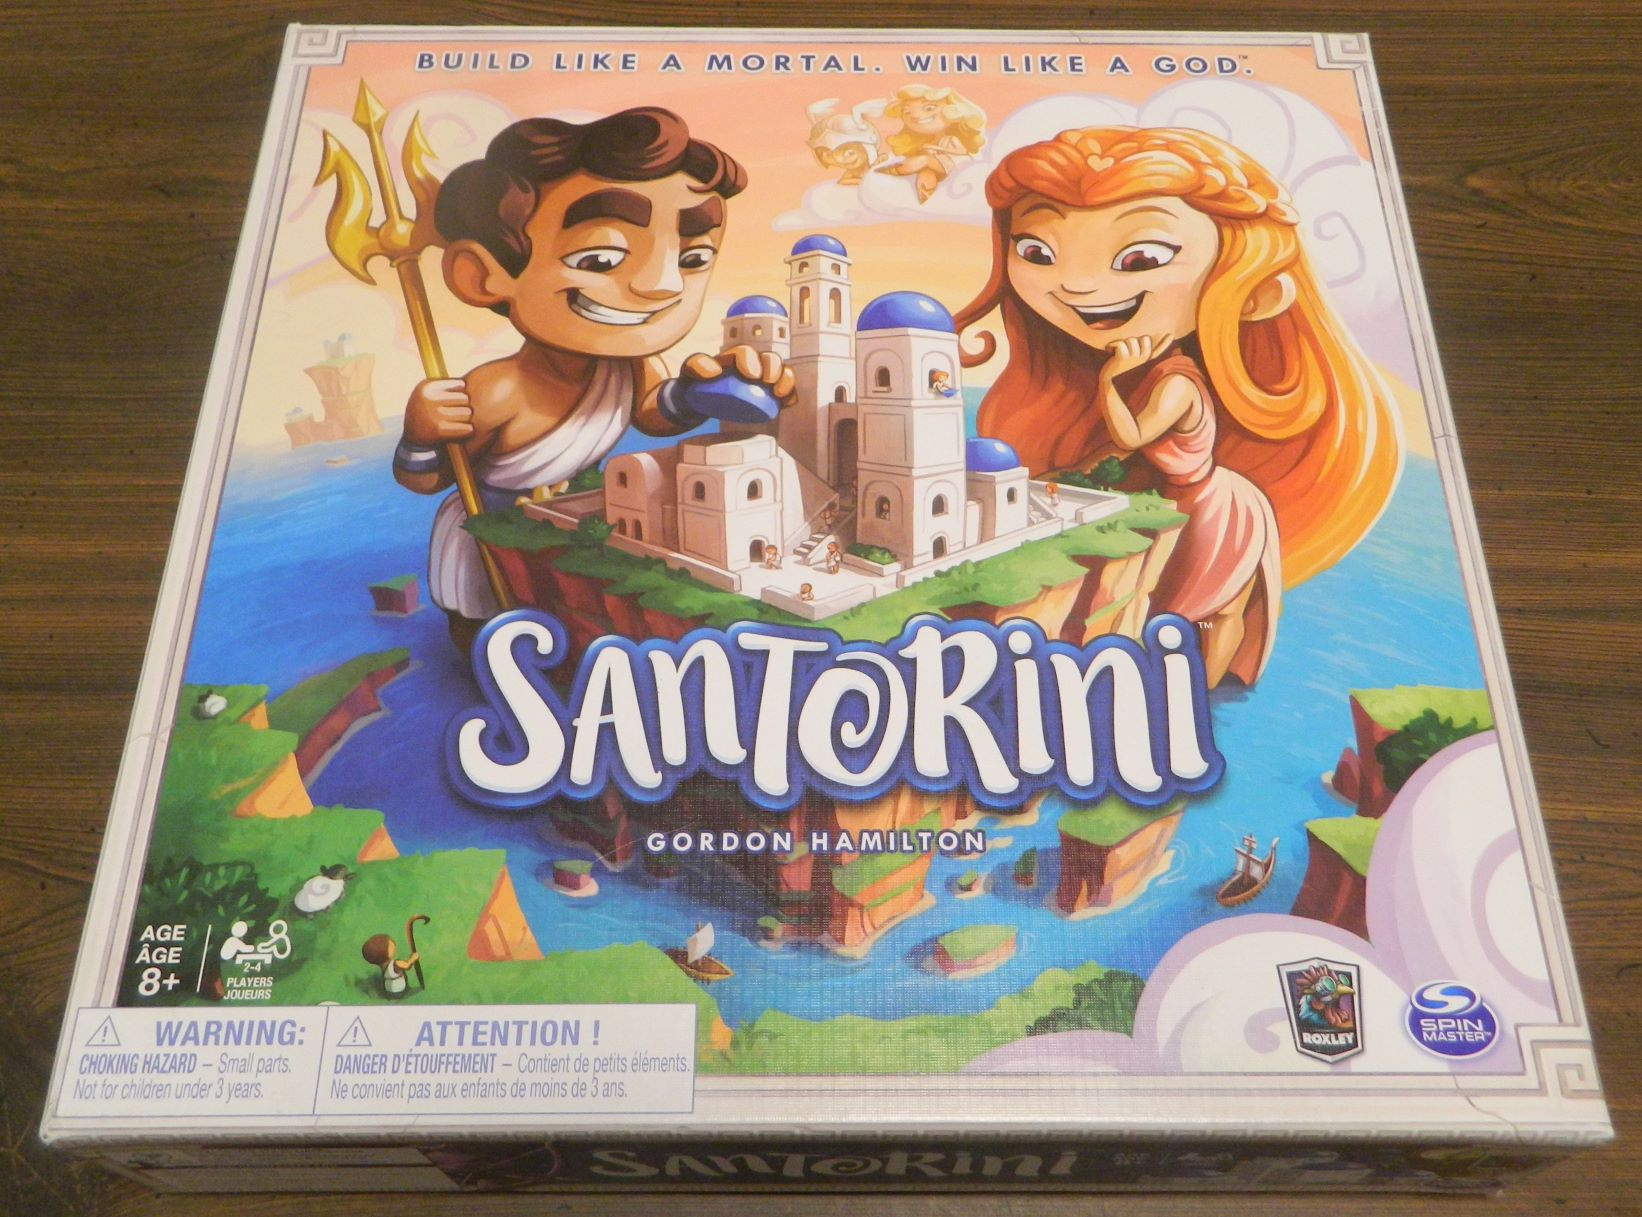 Box for Santorini